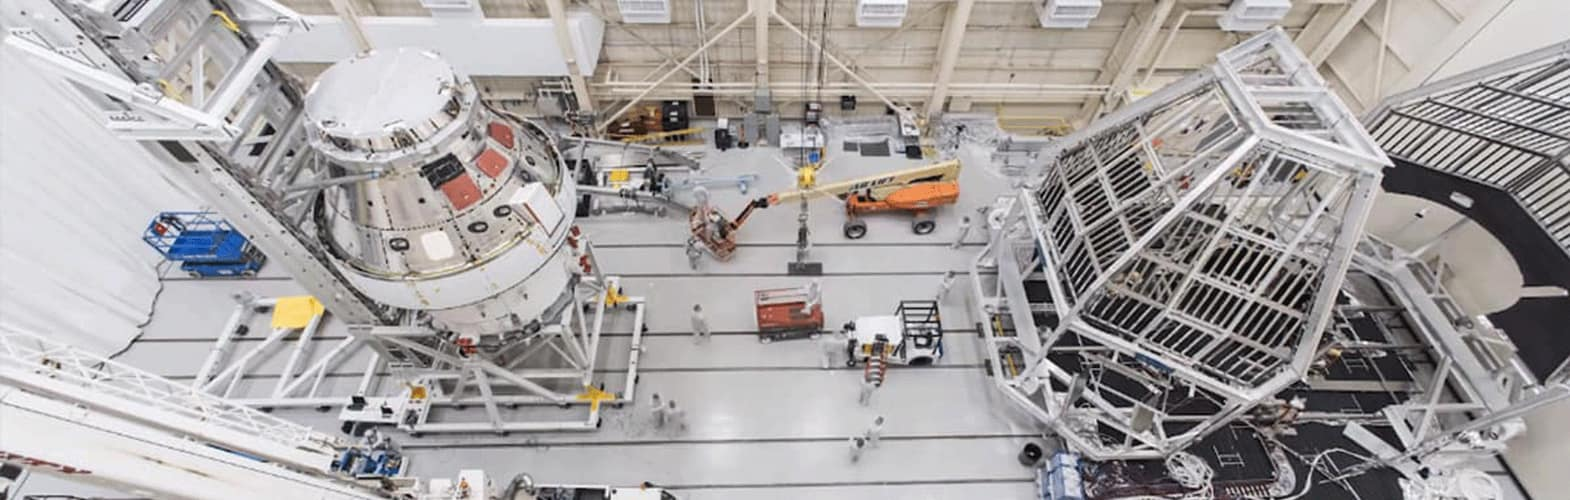 NASA's Orion Project